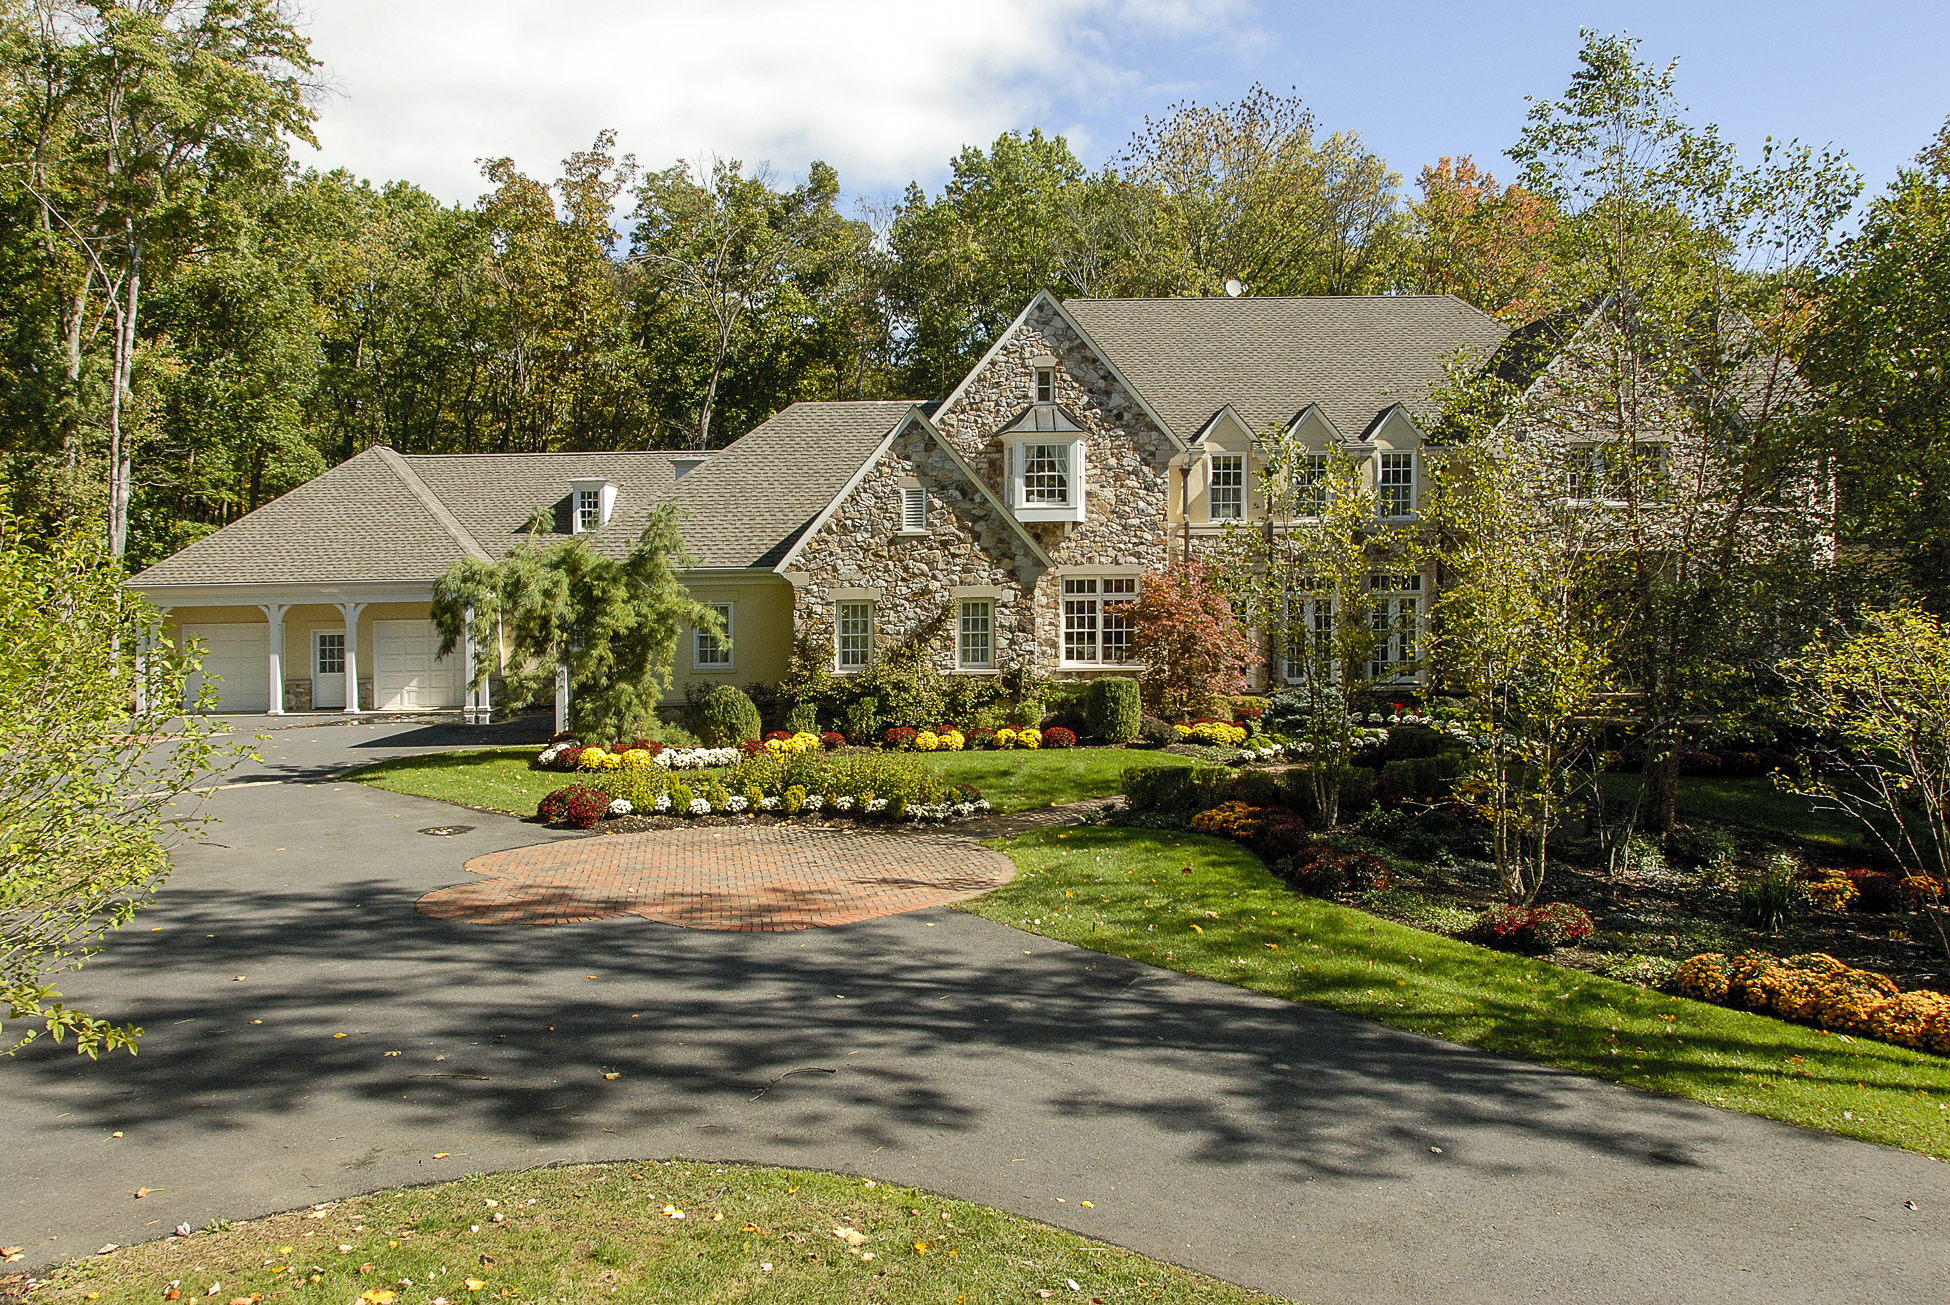 独户住宅 为 销售 在 Magnificent Manor Home in Princeton's Coveted Rushbrook 27 Running Cedar Road 普林斯顿, 08540 美国